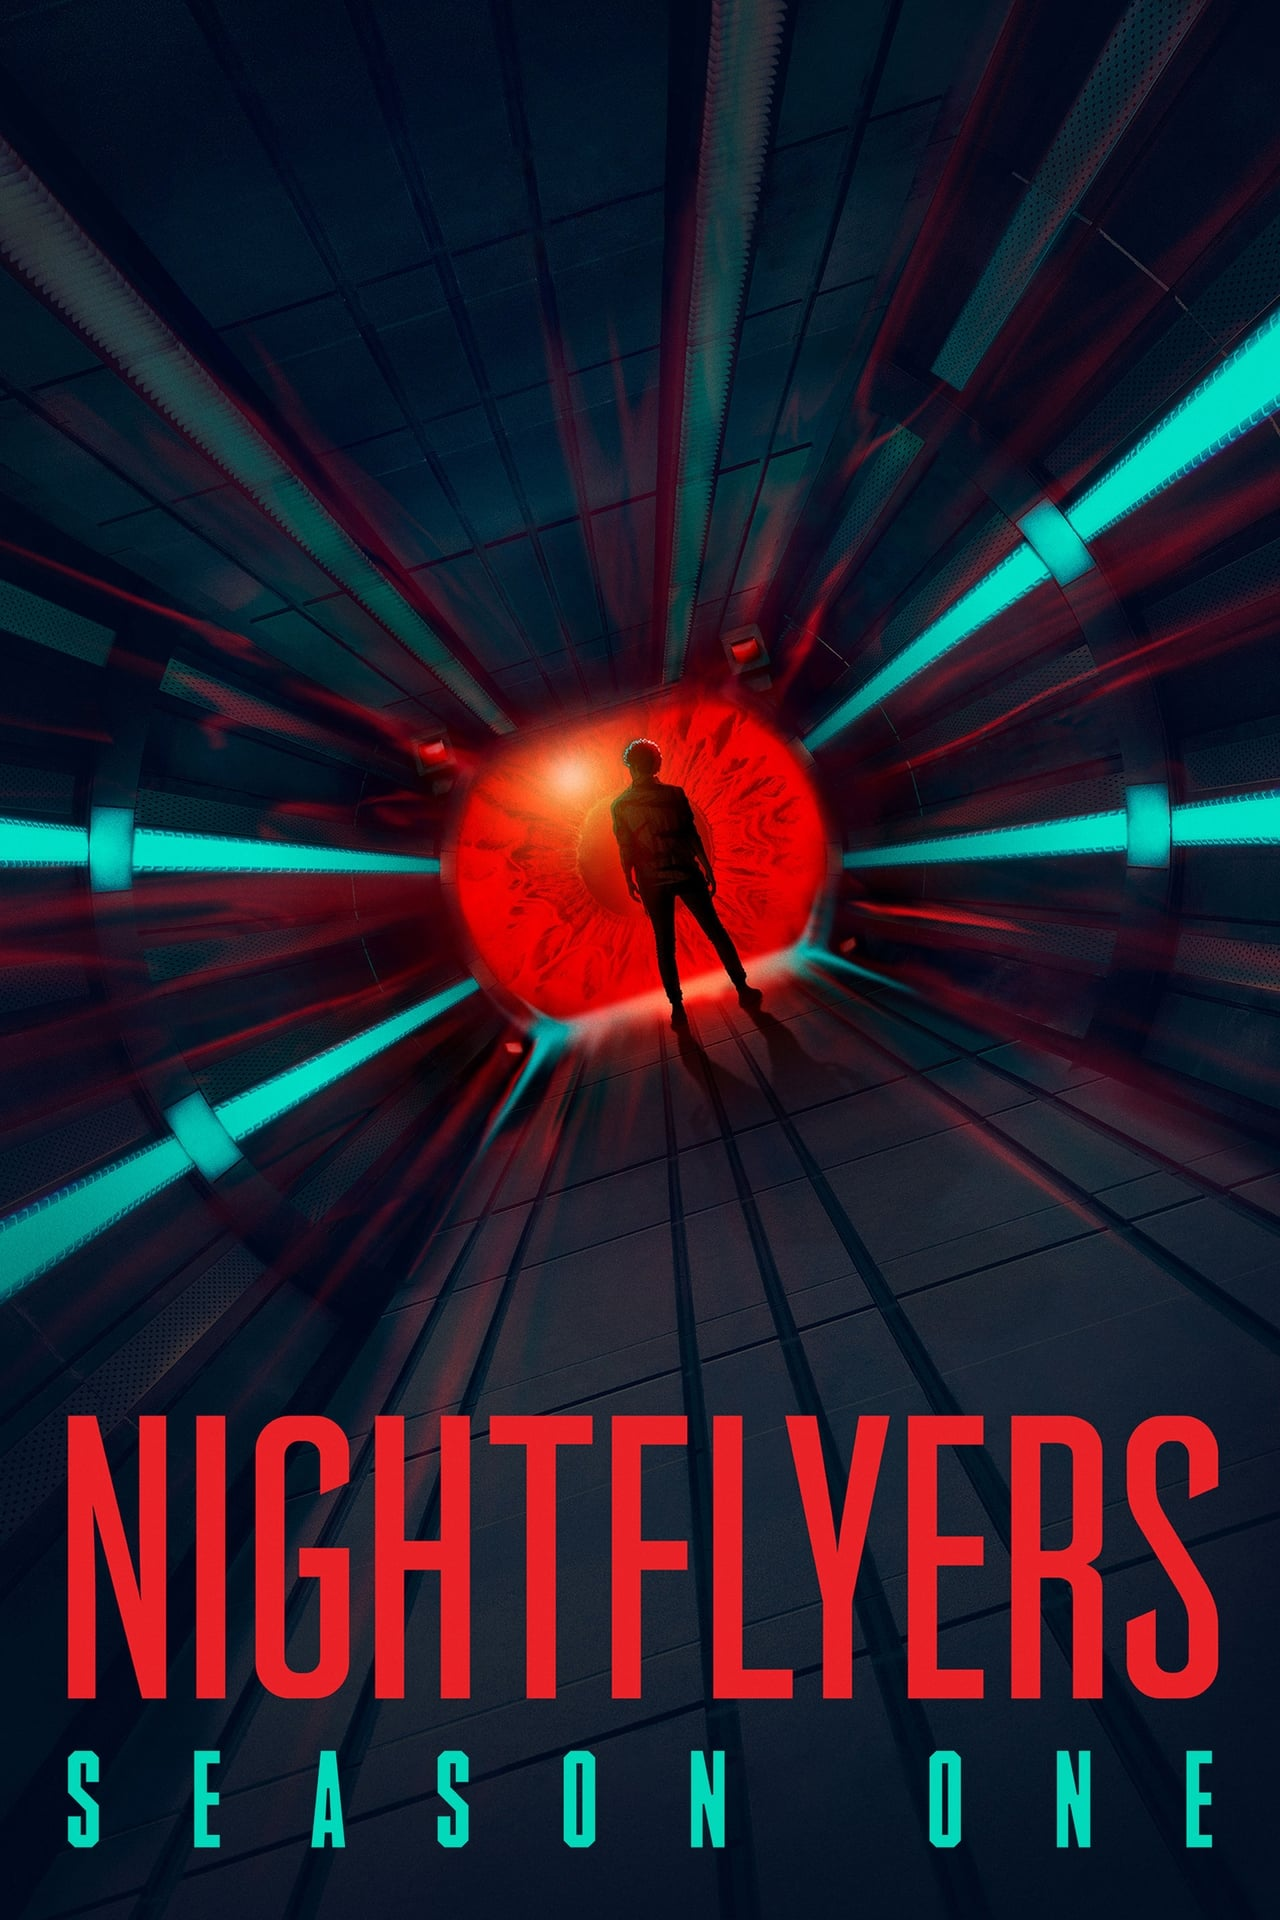 Watch Nightflyers Season 1 Online